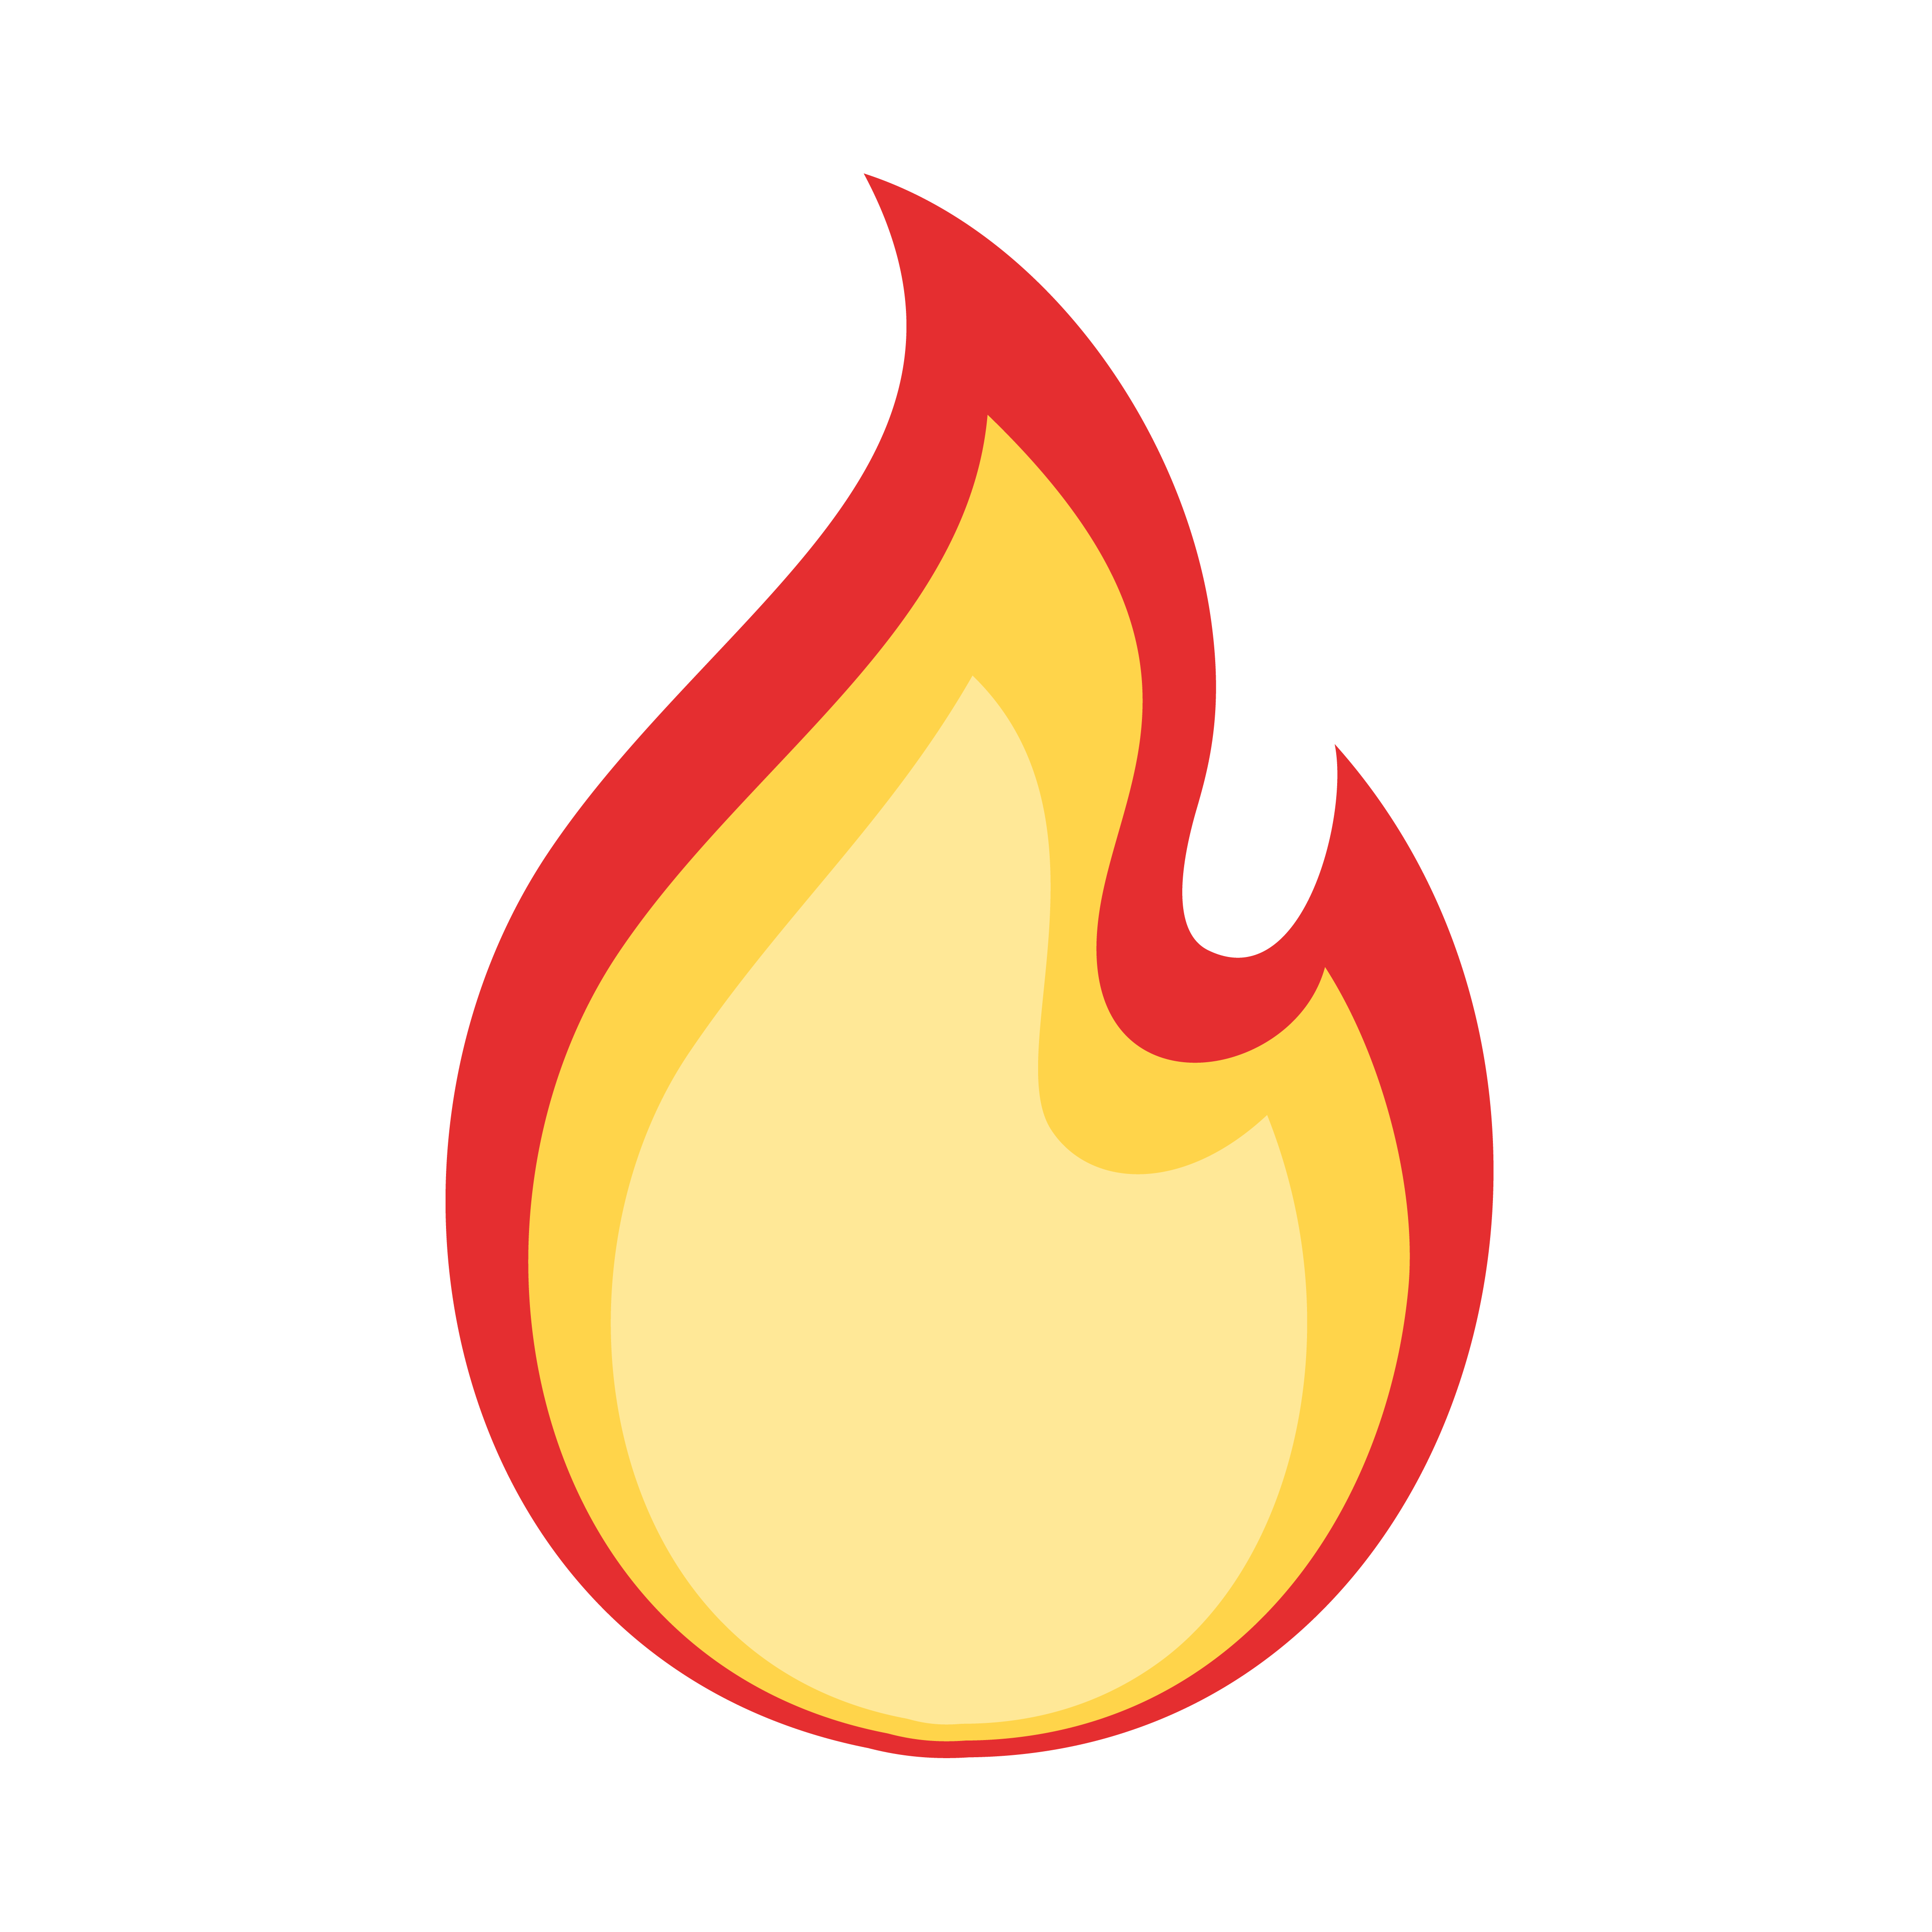 image of a flame